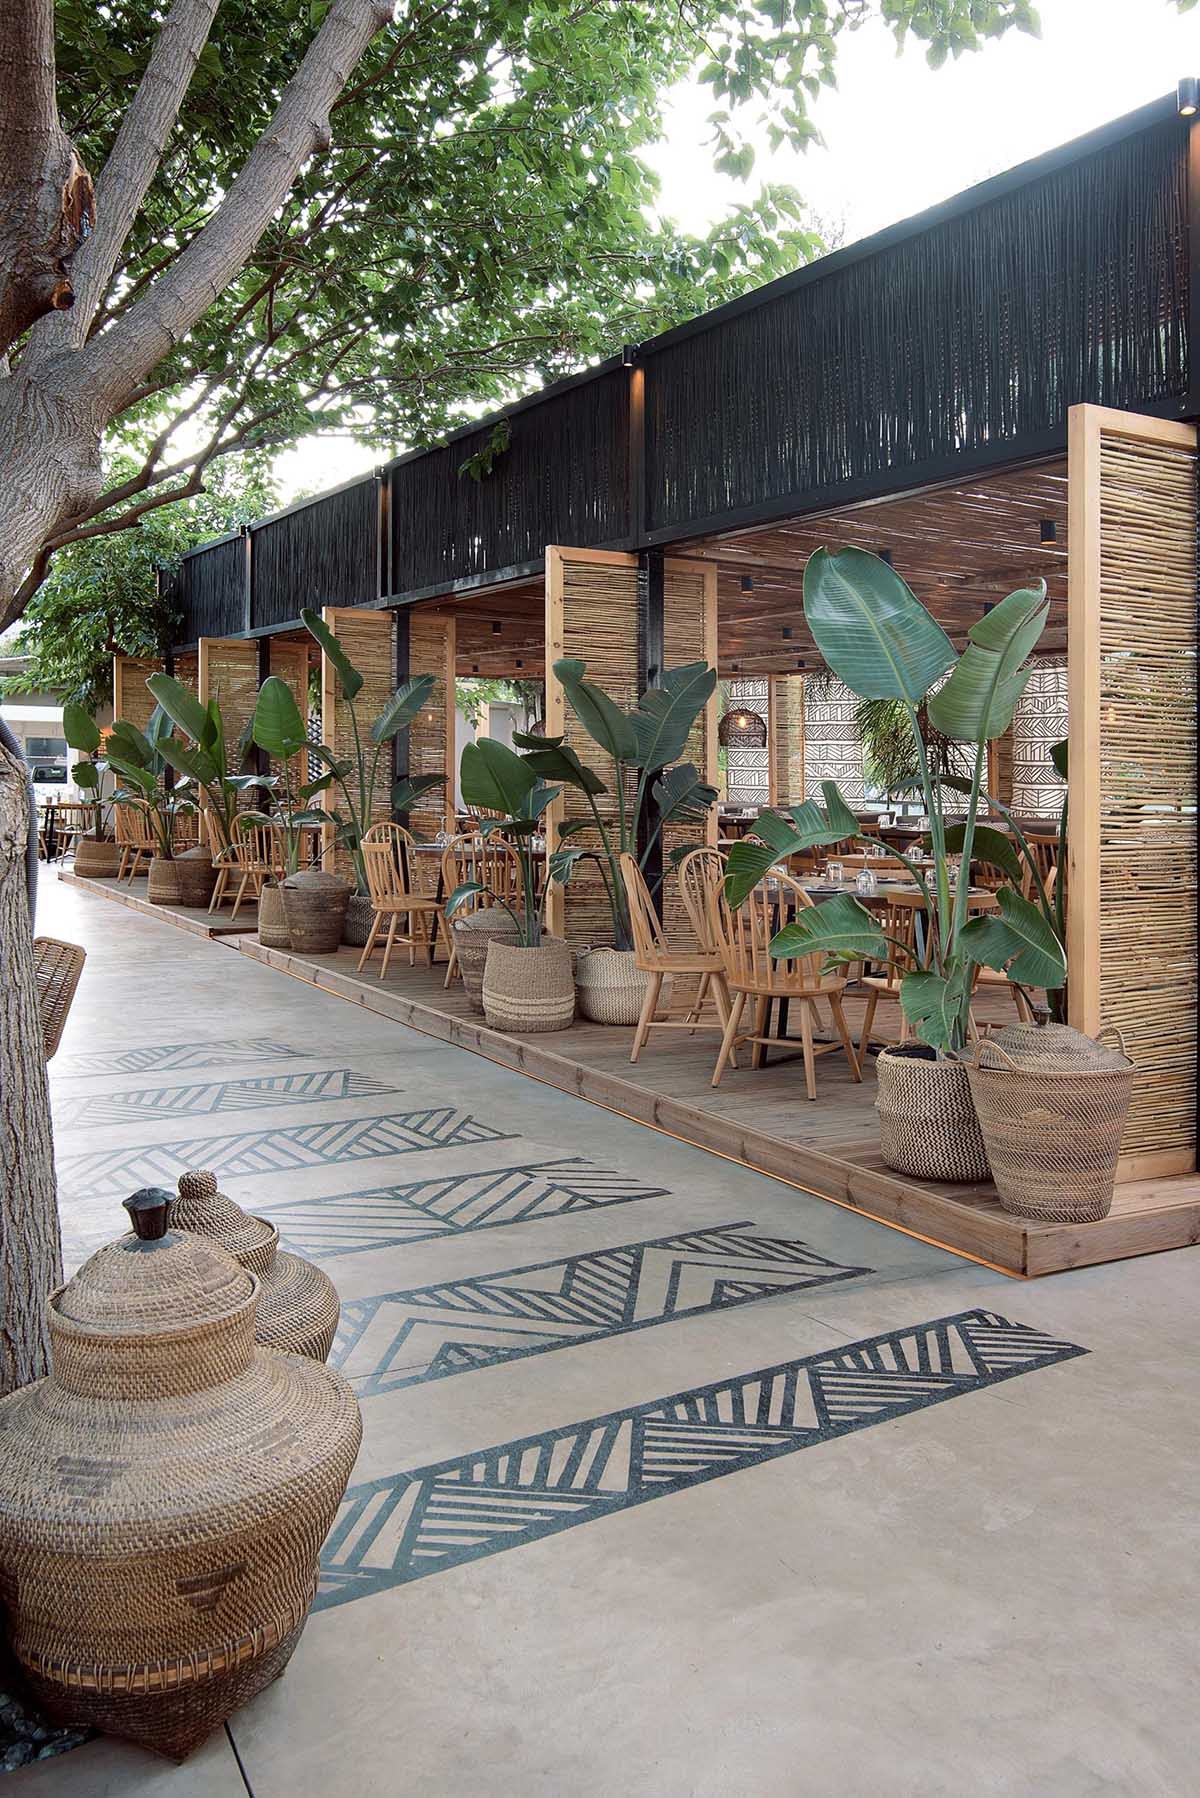 This restaurant and bar has a beach aesthetic that was created with reed screens, lighting, and decor.